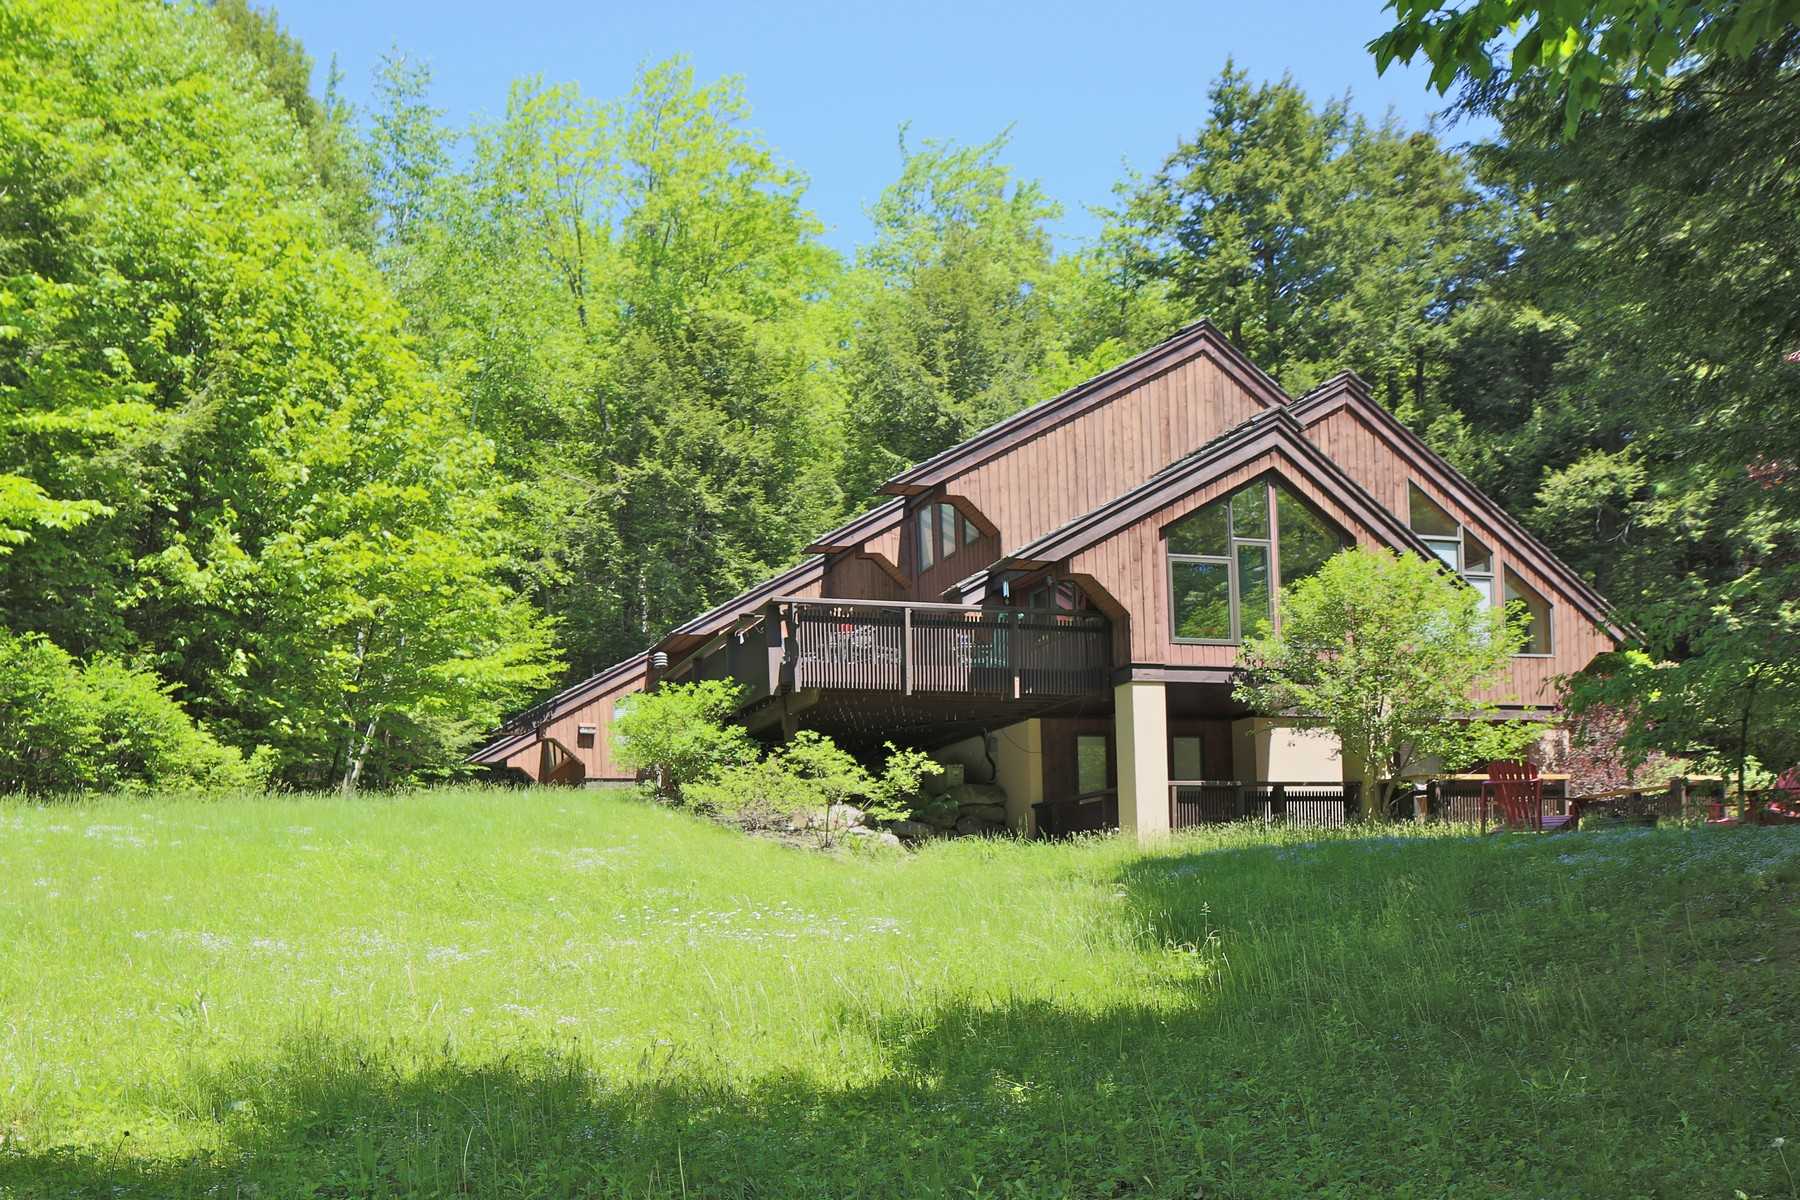 Single Family Homes for Sale at Fully Furnished - Rare and Pleasing Find! 363 Salt Ash Rd Plymouth, Vermont 05056 United States